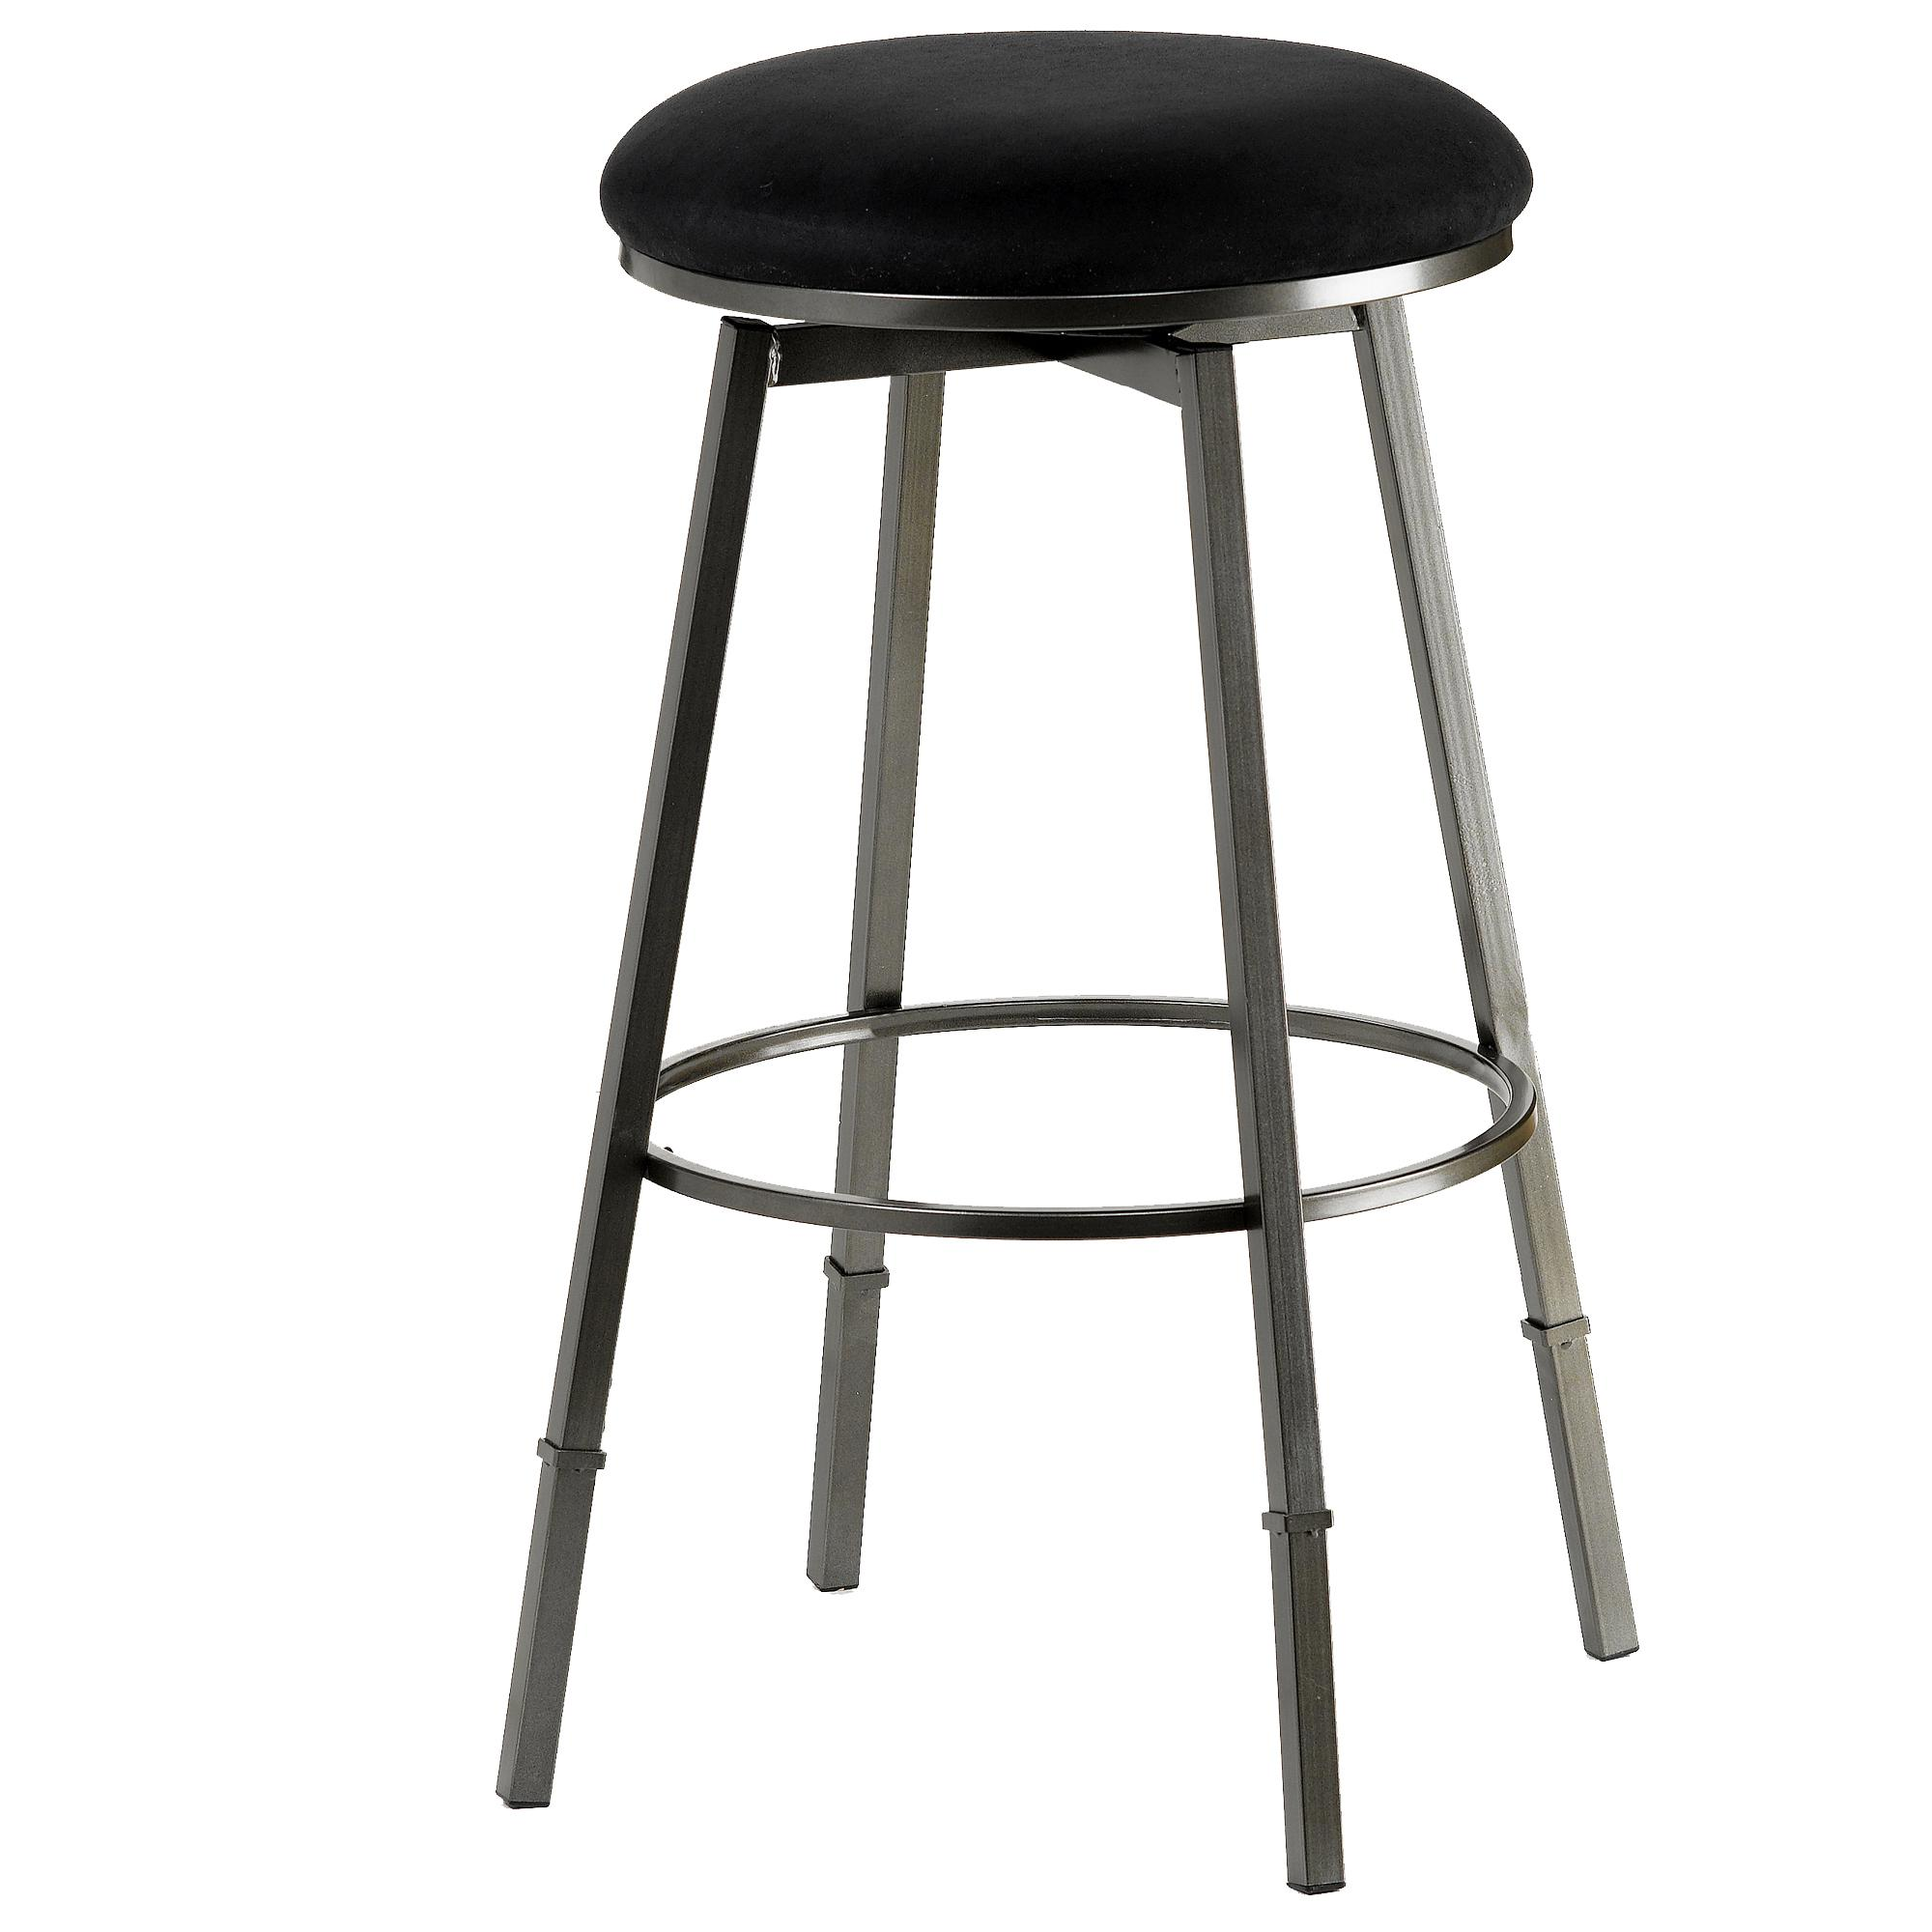 Hillsdale Backless Bar Stools Sanders Adjustable Backless Bar Stool - Item Number: 4150-831